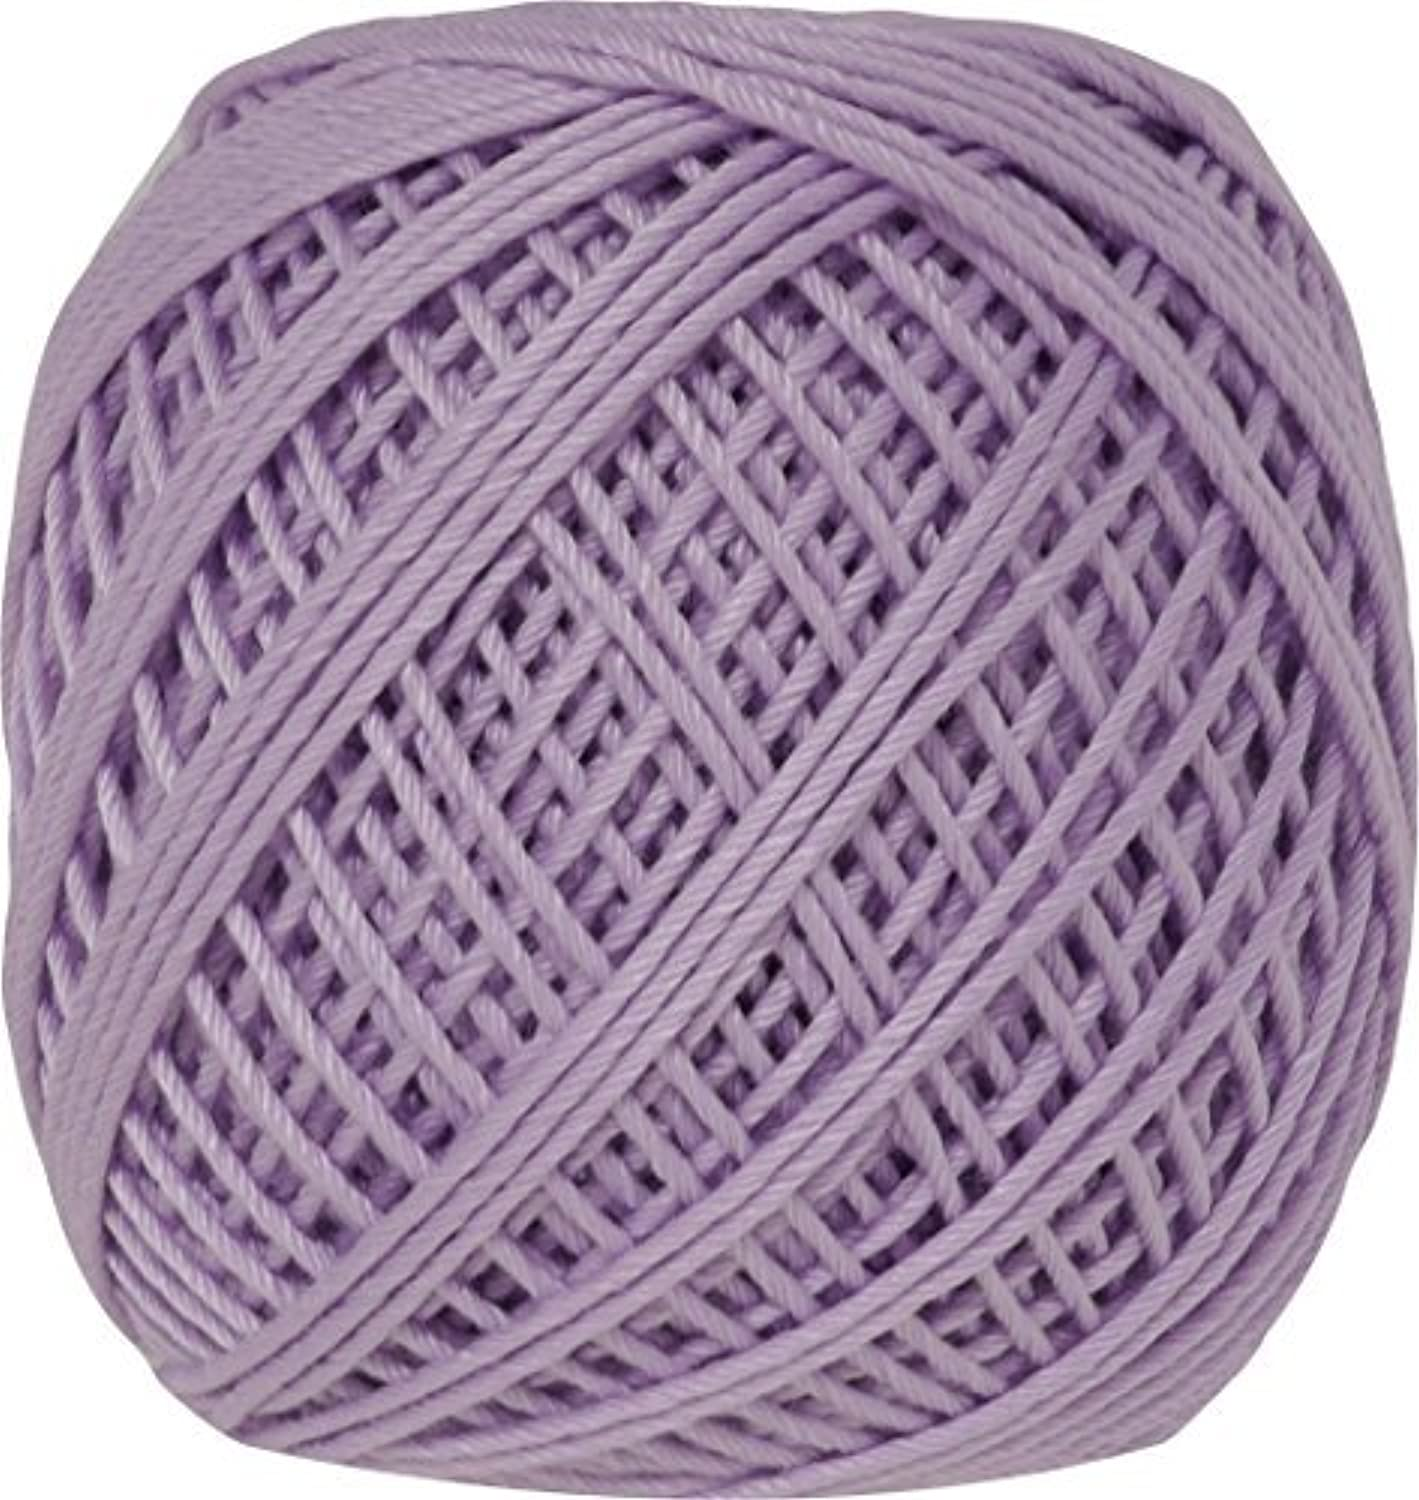 Lace yarn (thick count) Emmy grande (house) 25 g handball 3 ball set H 6